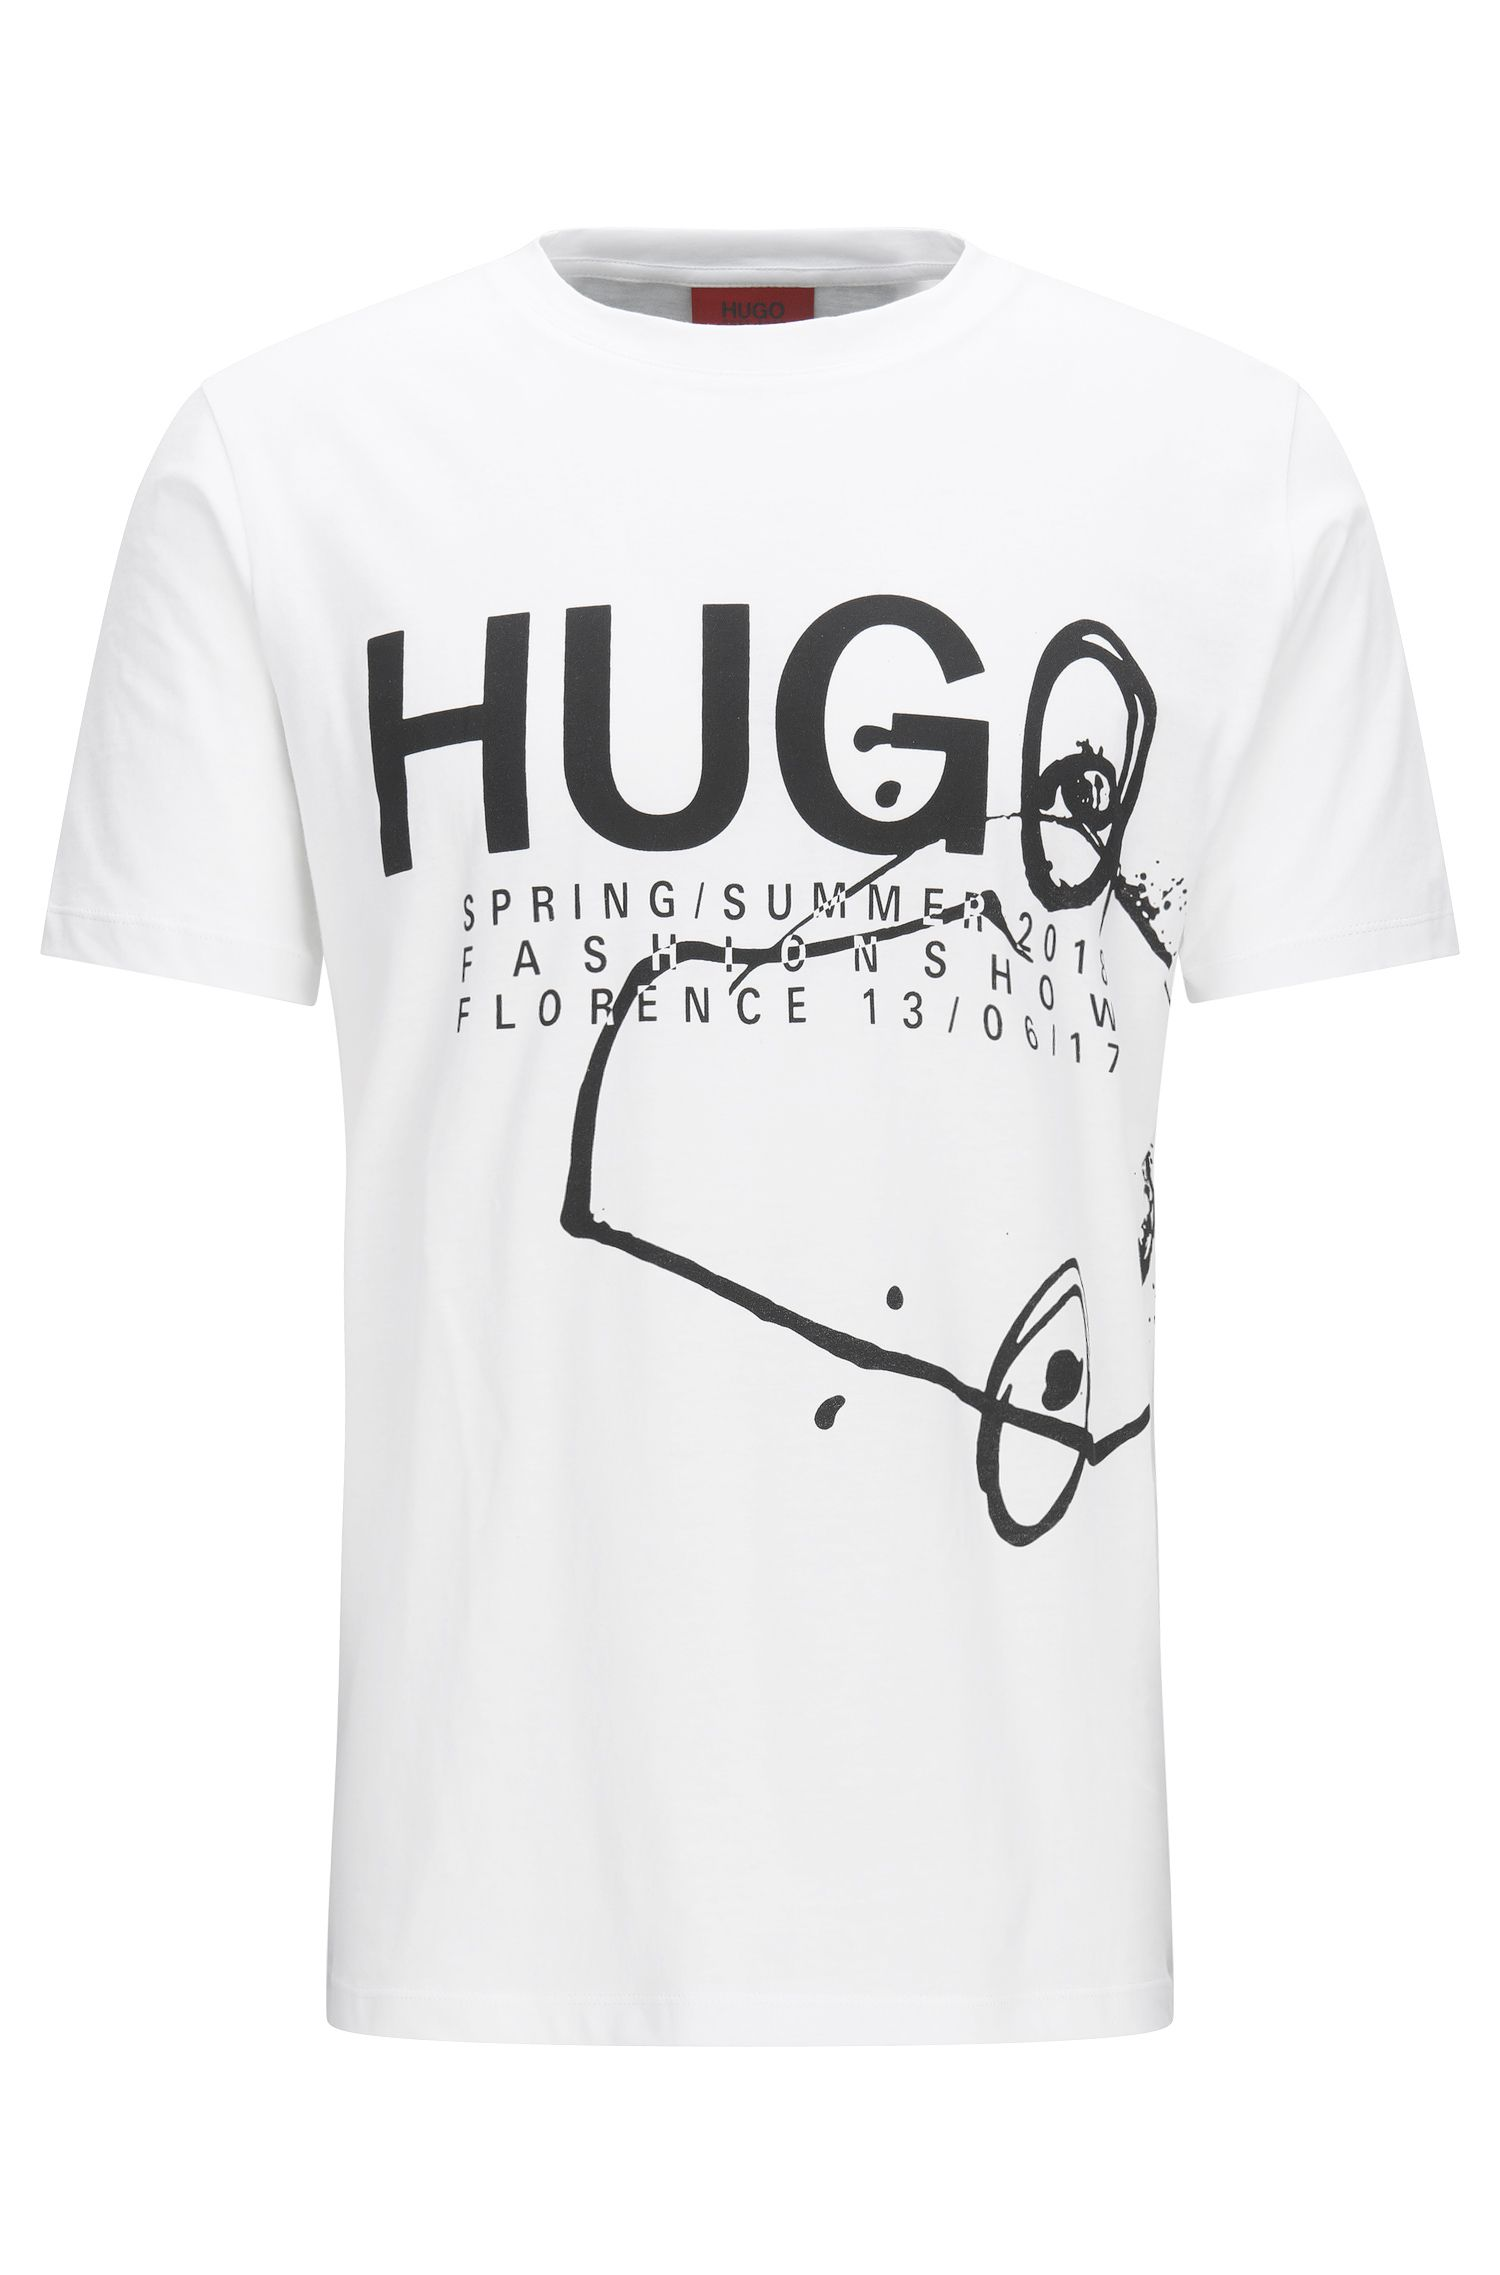 Regular-fit fashion show T-shirt in cotton